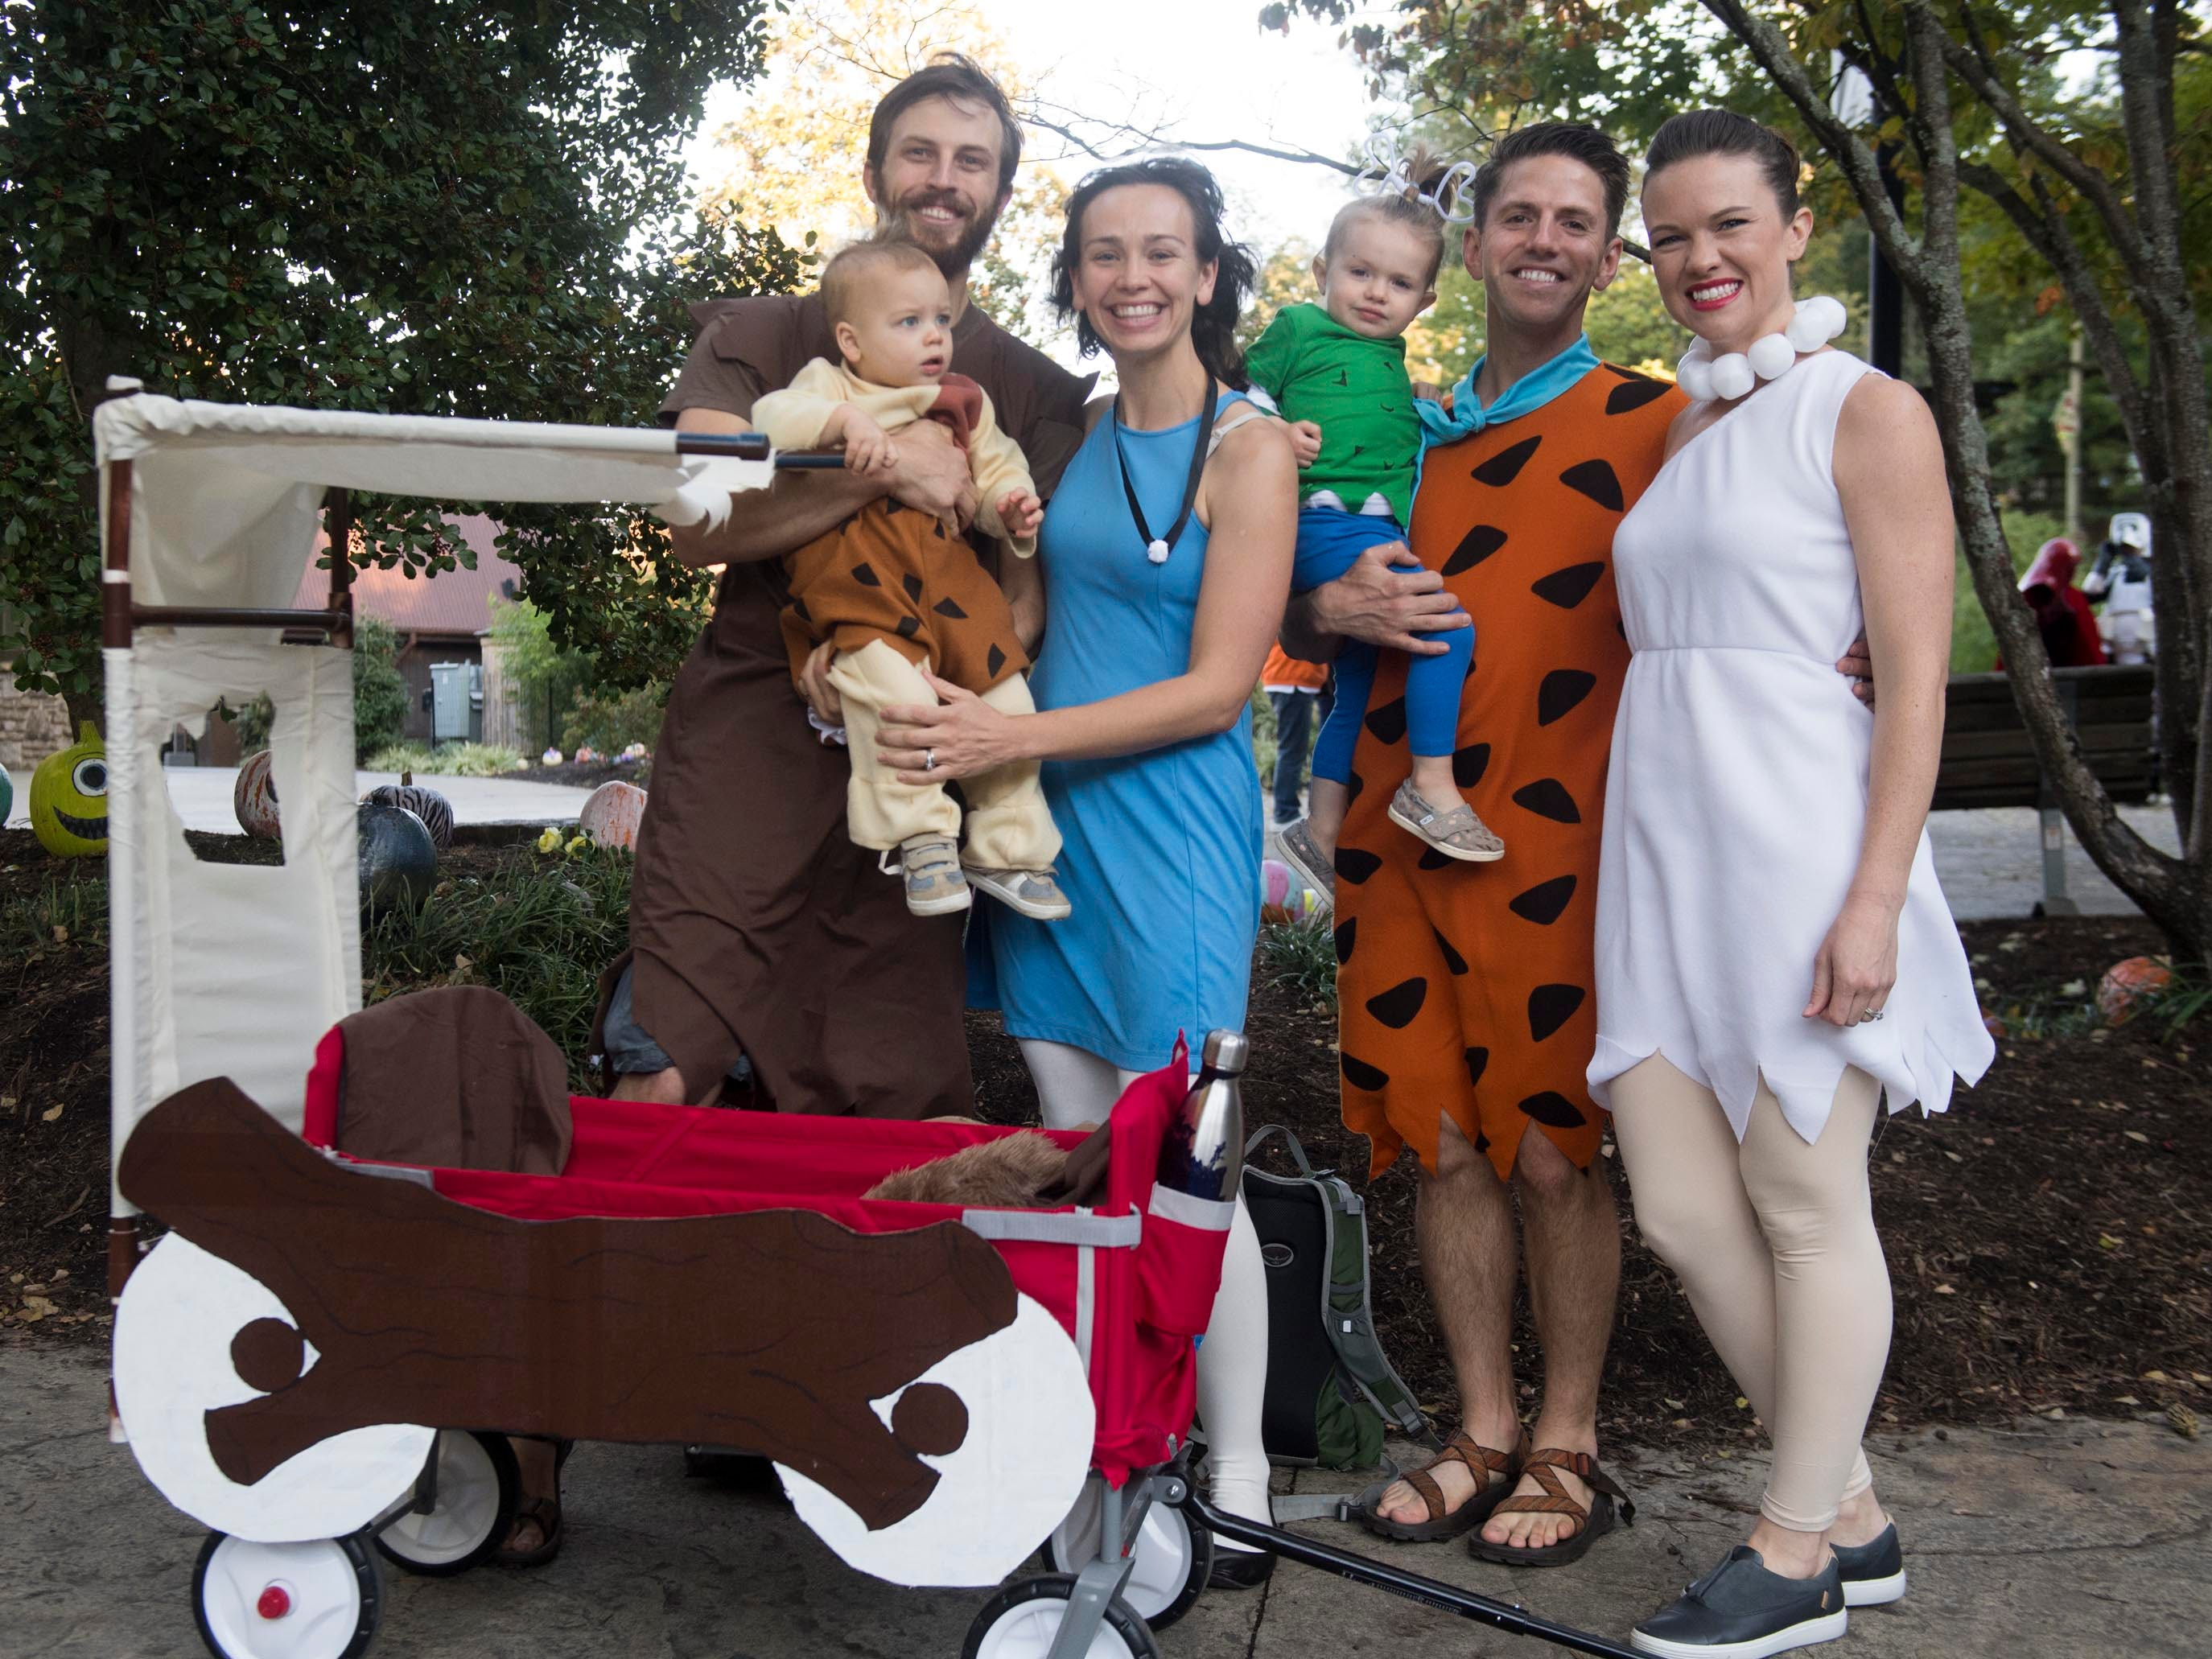 From left, Garrett, Brittany, and Fletcher Bentley with Jacob, Katie, and Eleanor Watson dressed as characters from The Flintstones for Zoo Knoxville's Boo! at the Zoo on Saturday, October 20, 2018.